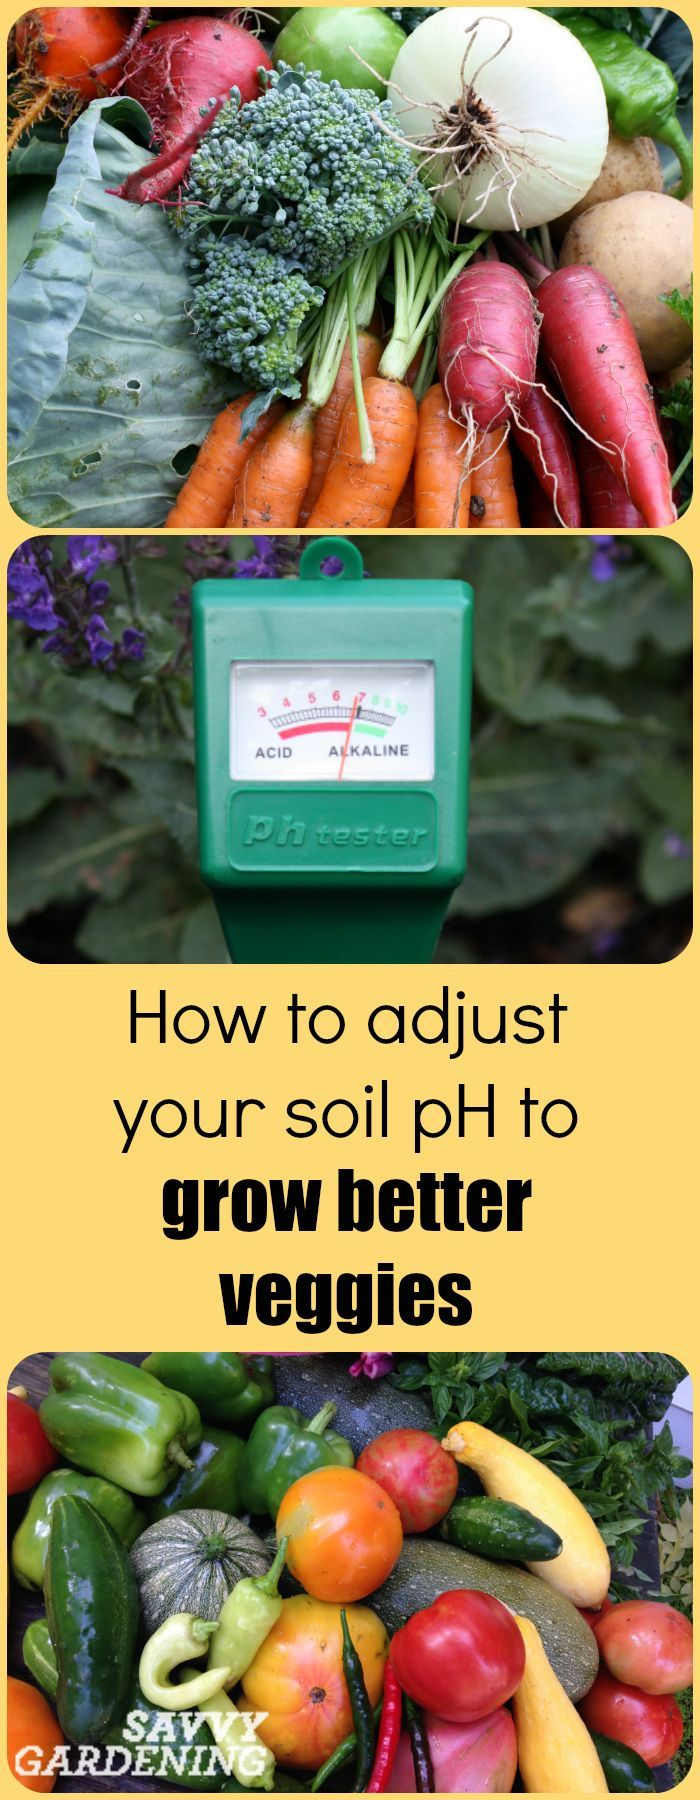 17 Best Ideas About Soil Ph On Pinterest Garden Soil Gardening And Companion Planting